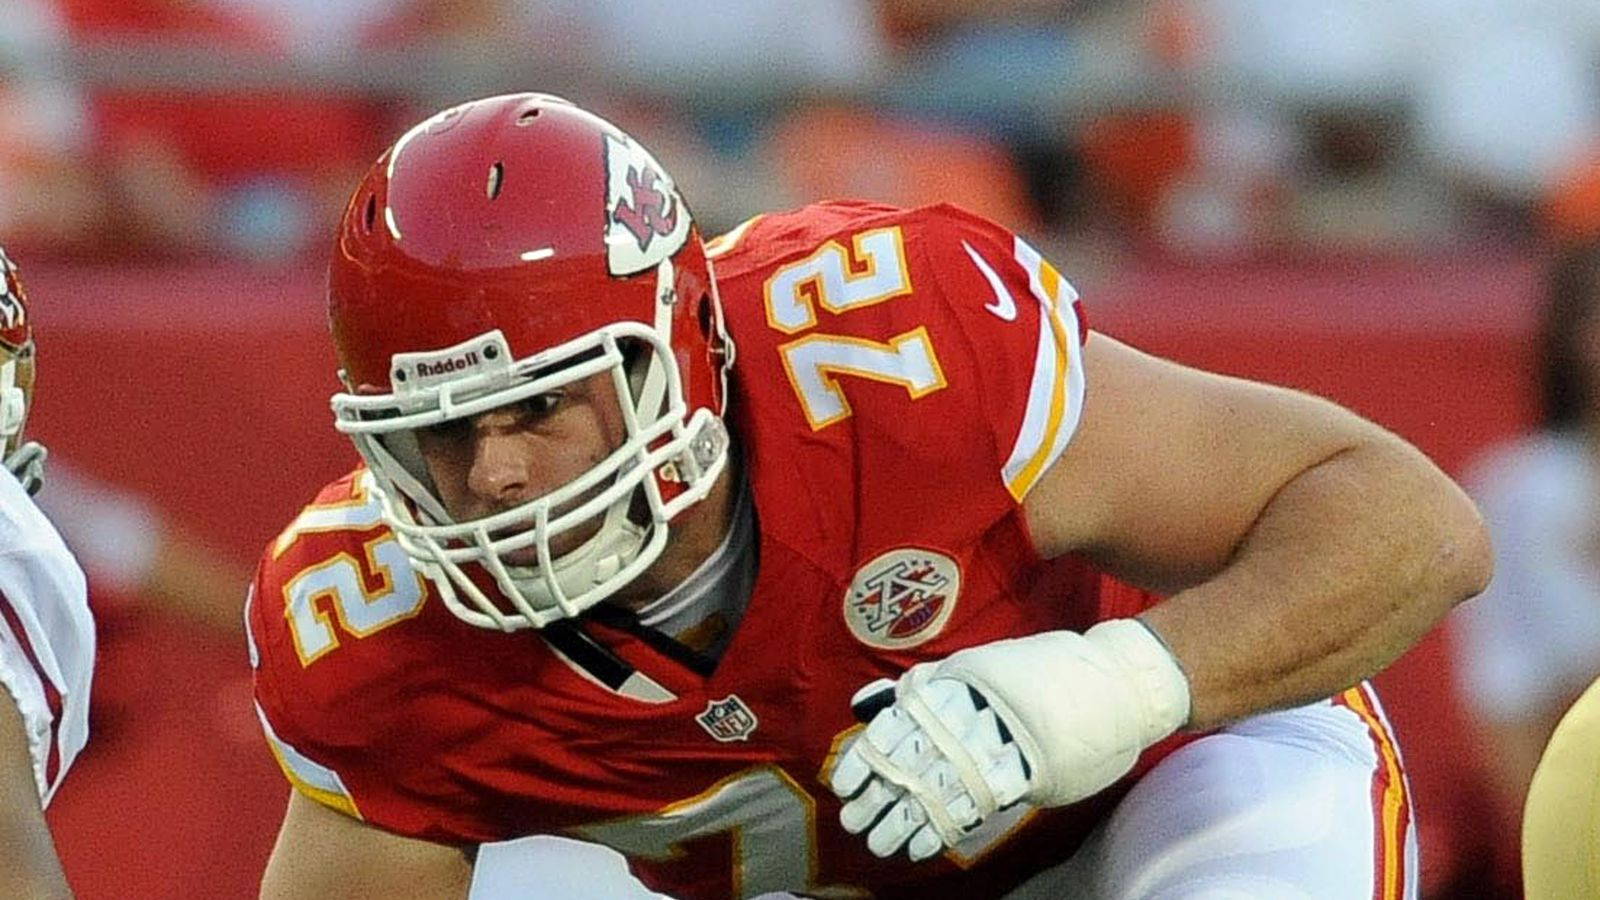 Eric Fisher's pass protection has to get better for the ...